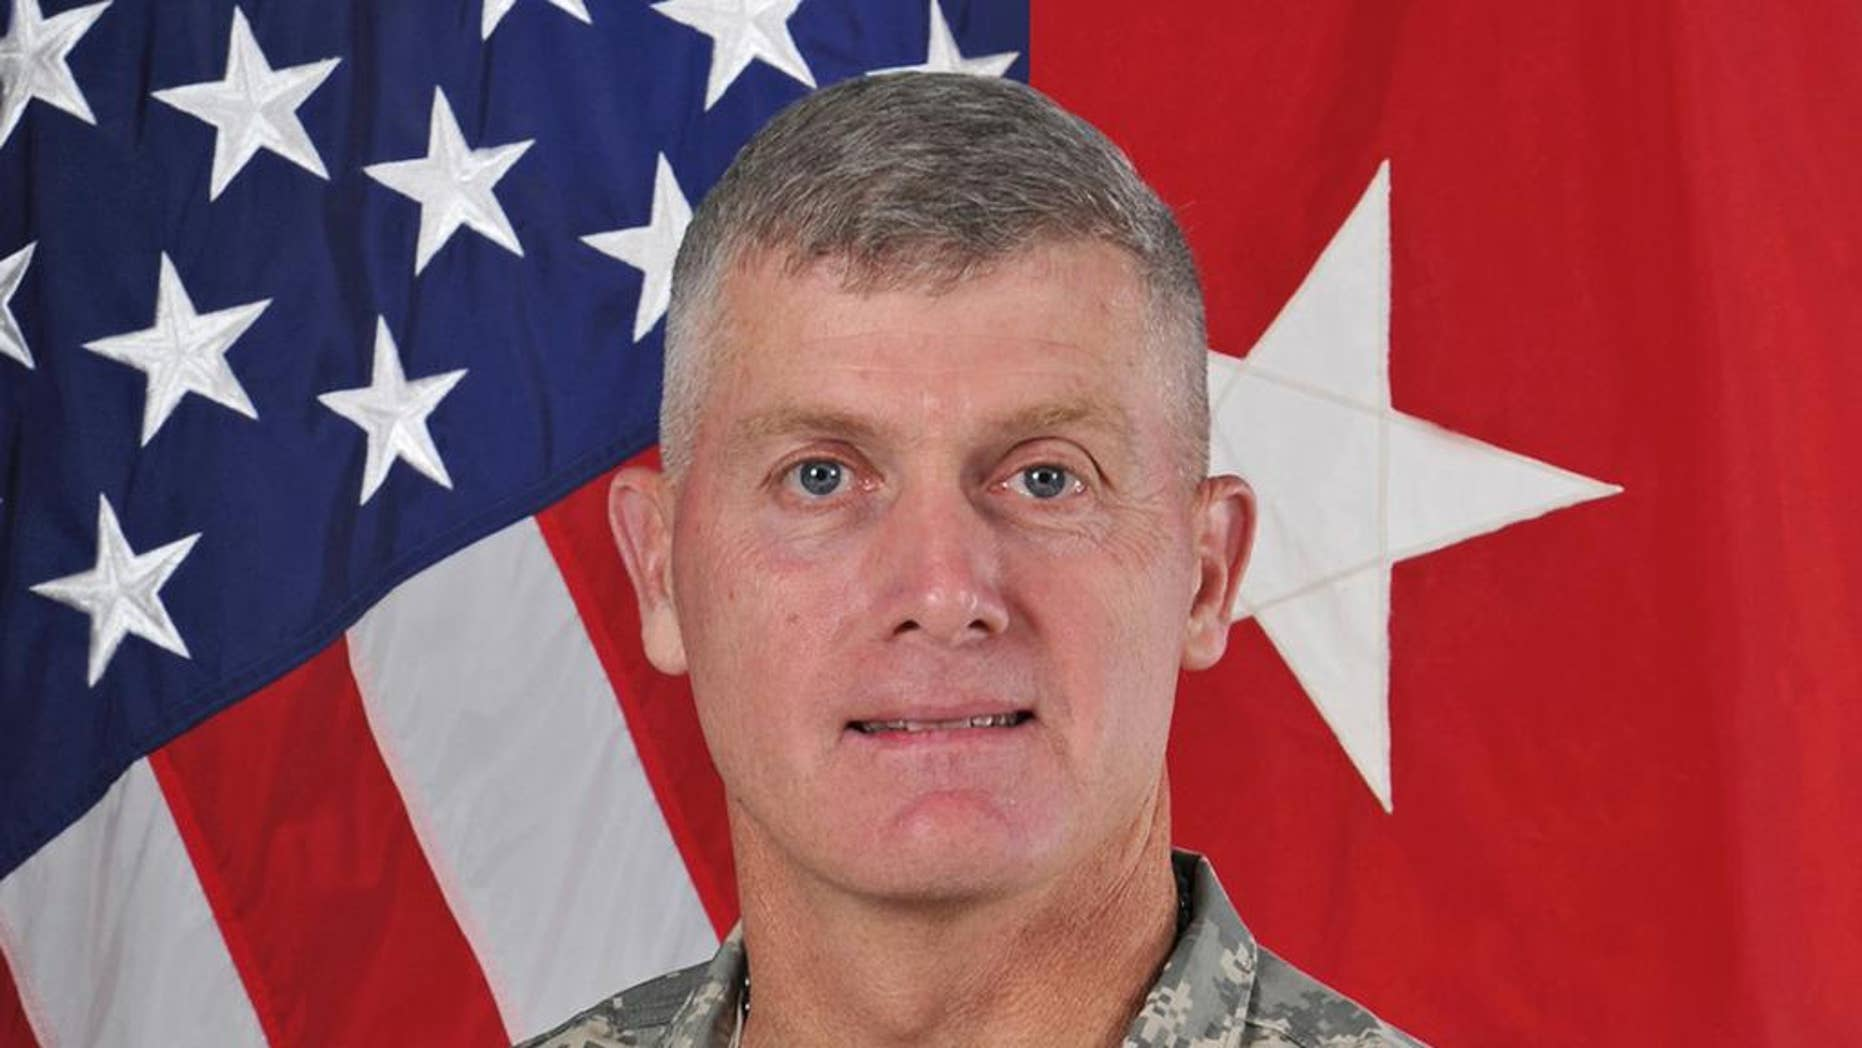 This photo provided by the U.S. Army shows Maj. Gen. Wayne Grigsby. The U.S. Army says it has fired Grigsby, the commander of Fort Riley, from his job and is continuing an investigation launched last week at the Kansas base. No details have been provided. Army spokesman Col. Patrick R. Seiber says that Grigsby was relieved of command of the 1st Infantry Division due to loss of confidence in his ability to lead. Grigsby was initially suspended on Friday, Sept. 23, 2016. (U.S. Army via AP)